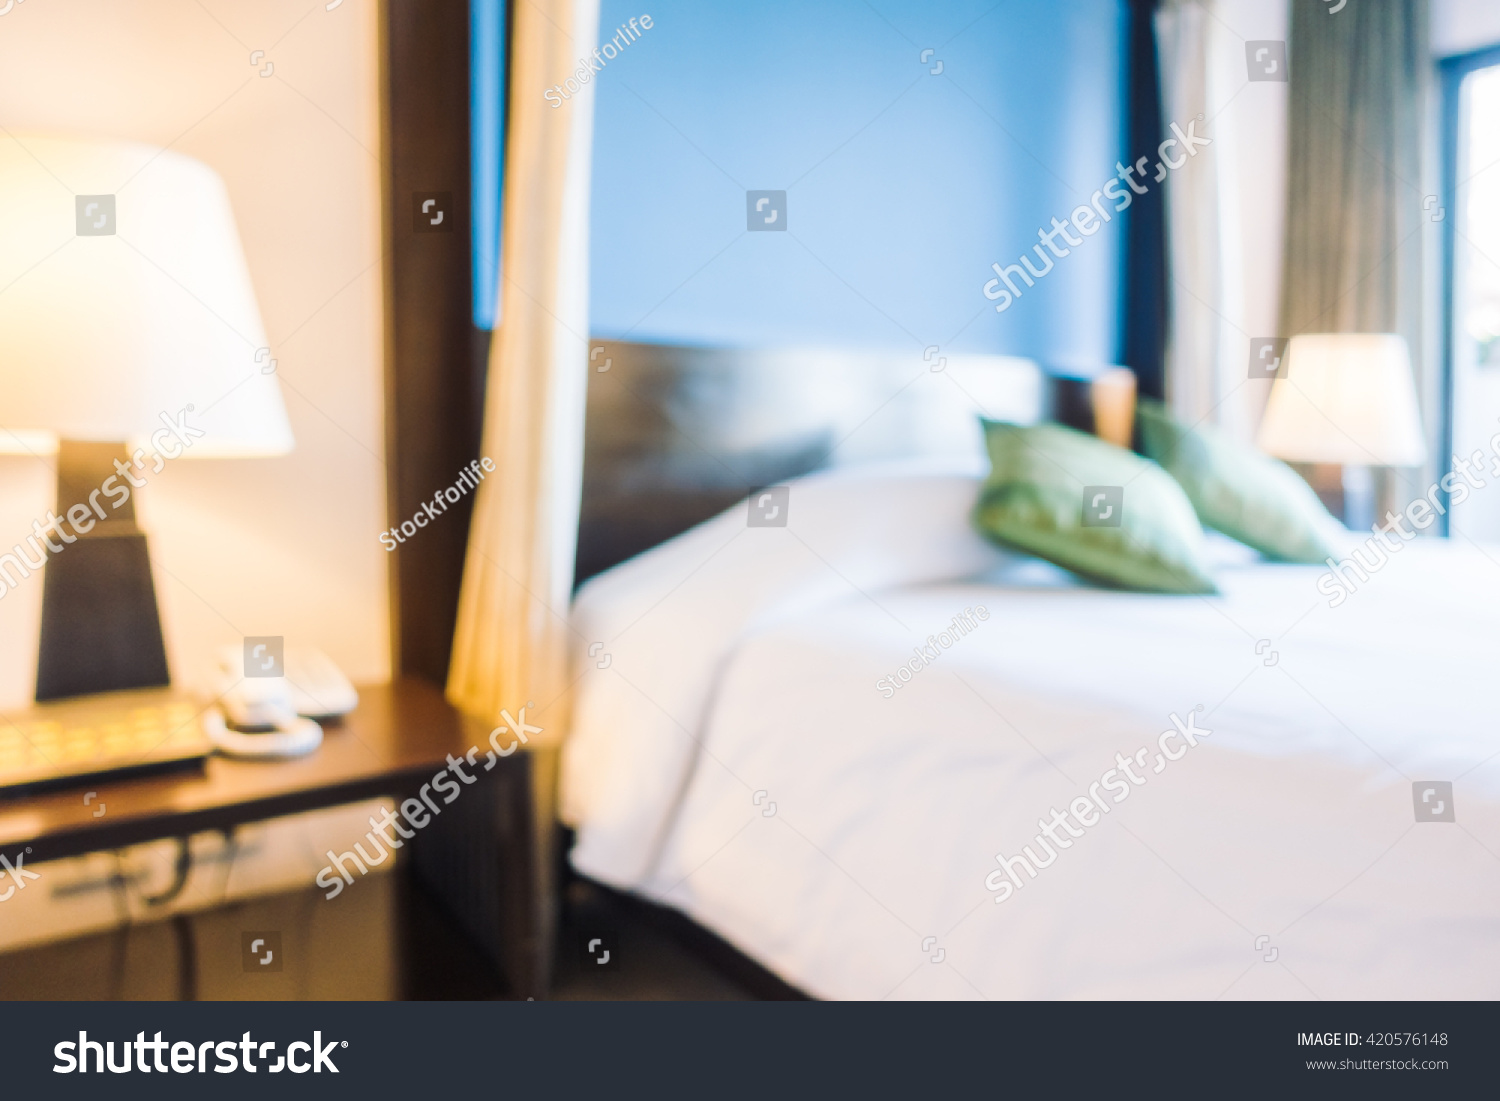 bedroom interior equipped abstract - photo #16